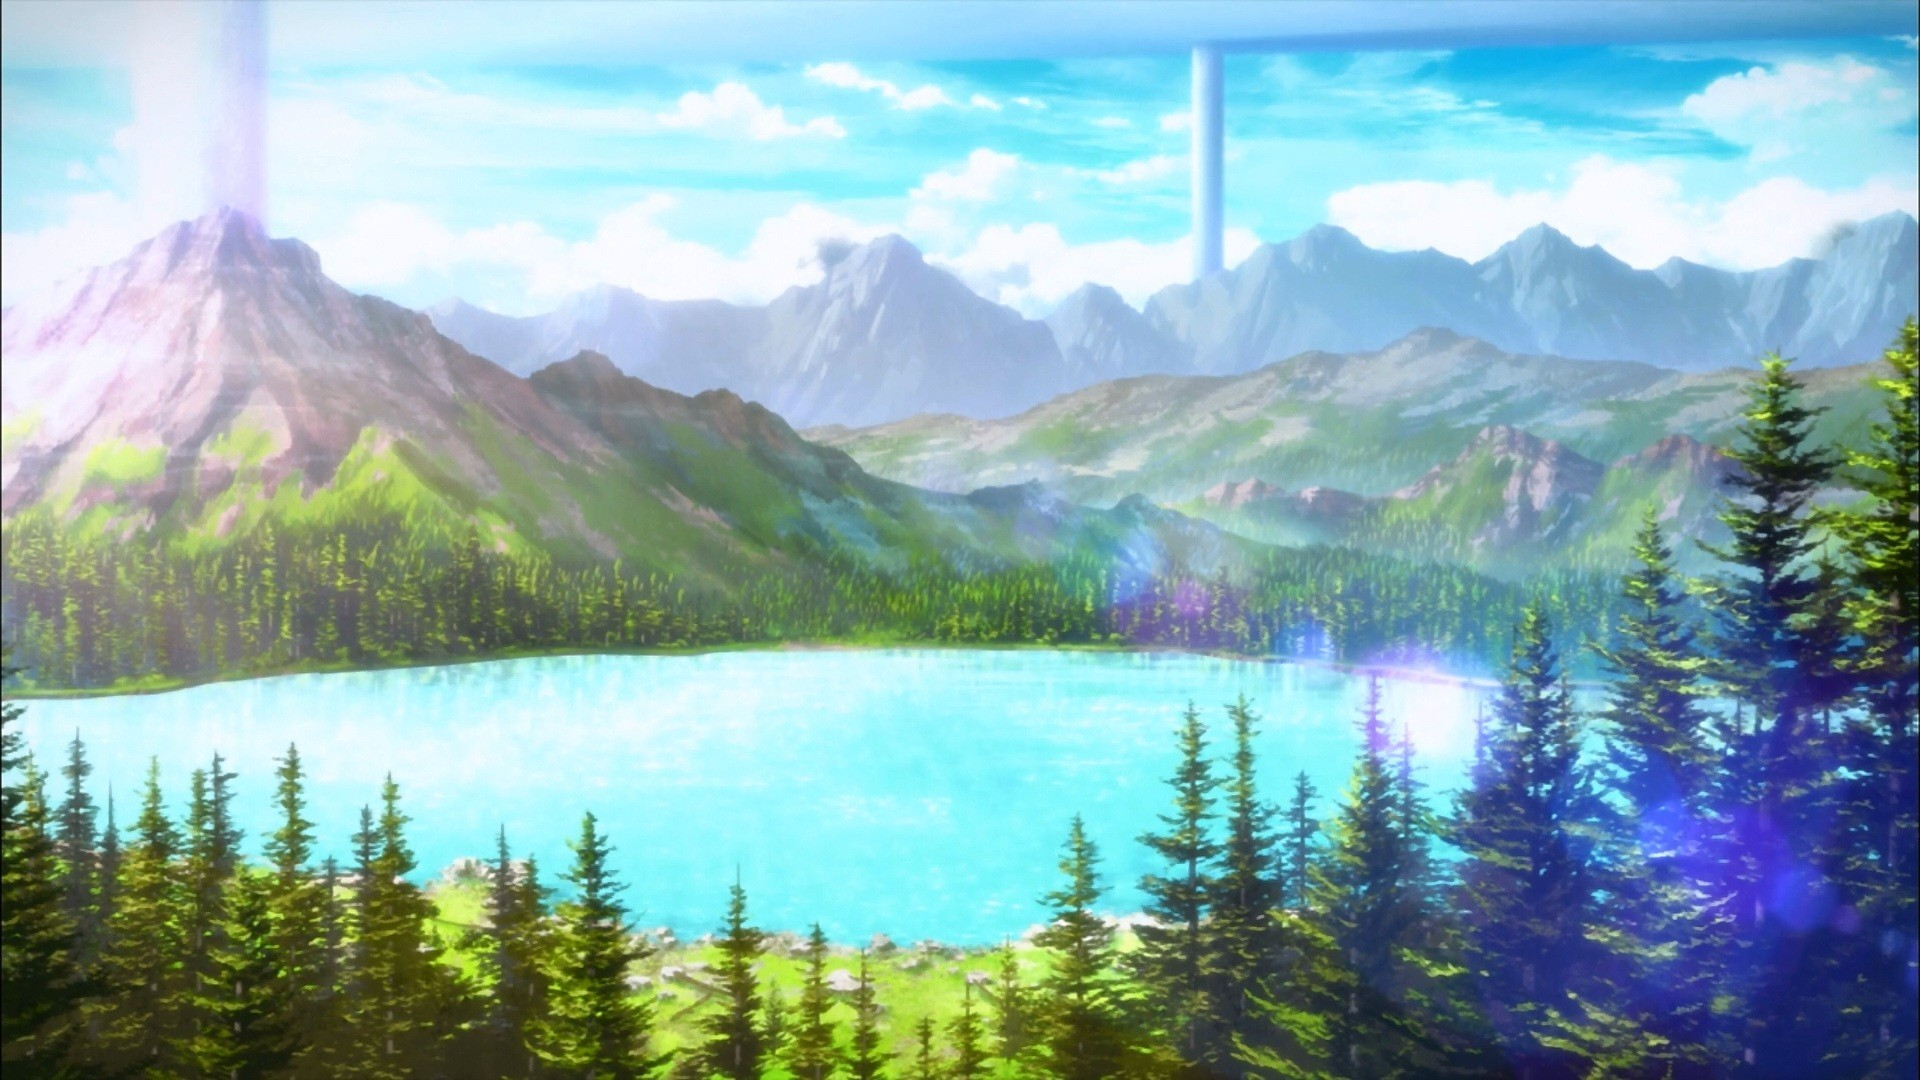 … hd wallpapers backgrounds; anime landscape sword art online mountains  trees …